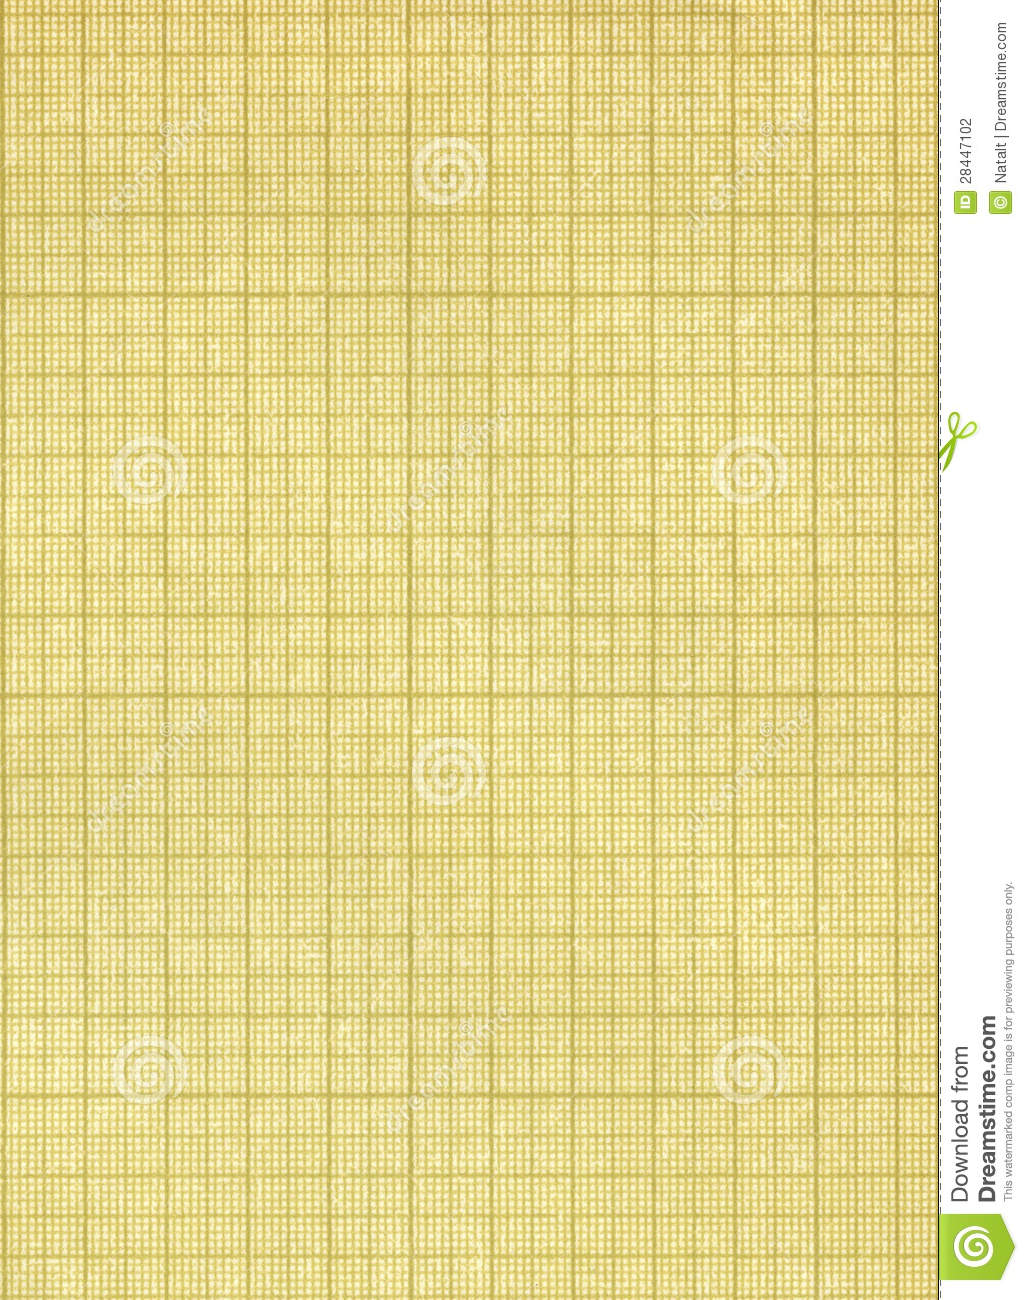 xxl millimeter paper stock photo  image of graph  notepad